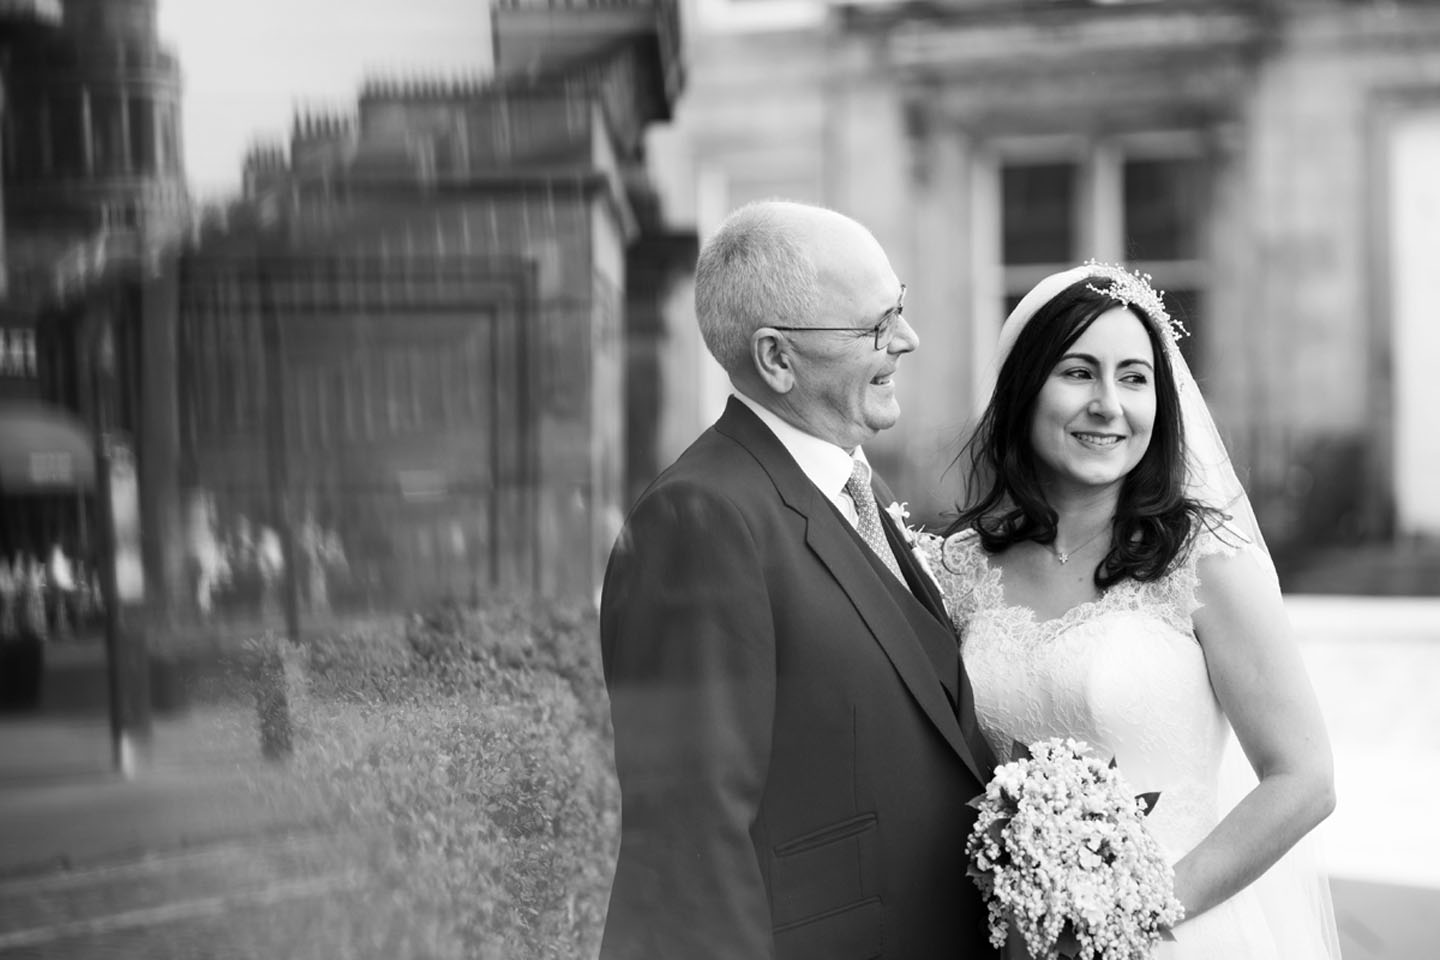 Real Wedding Stories | Edinburgh Wedding Inspiration from Carolyn and Andrew | The Foil Invite Company Blog